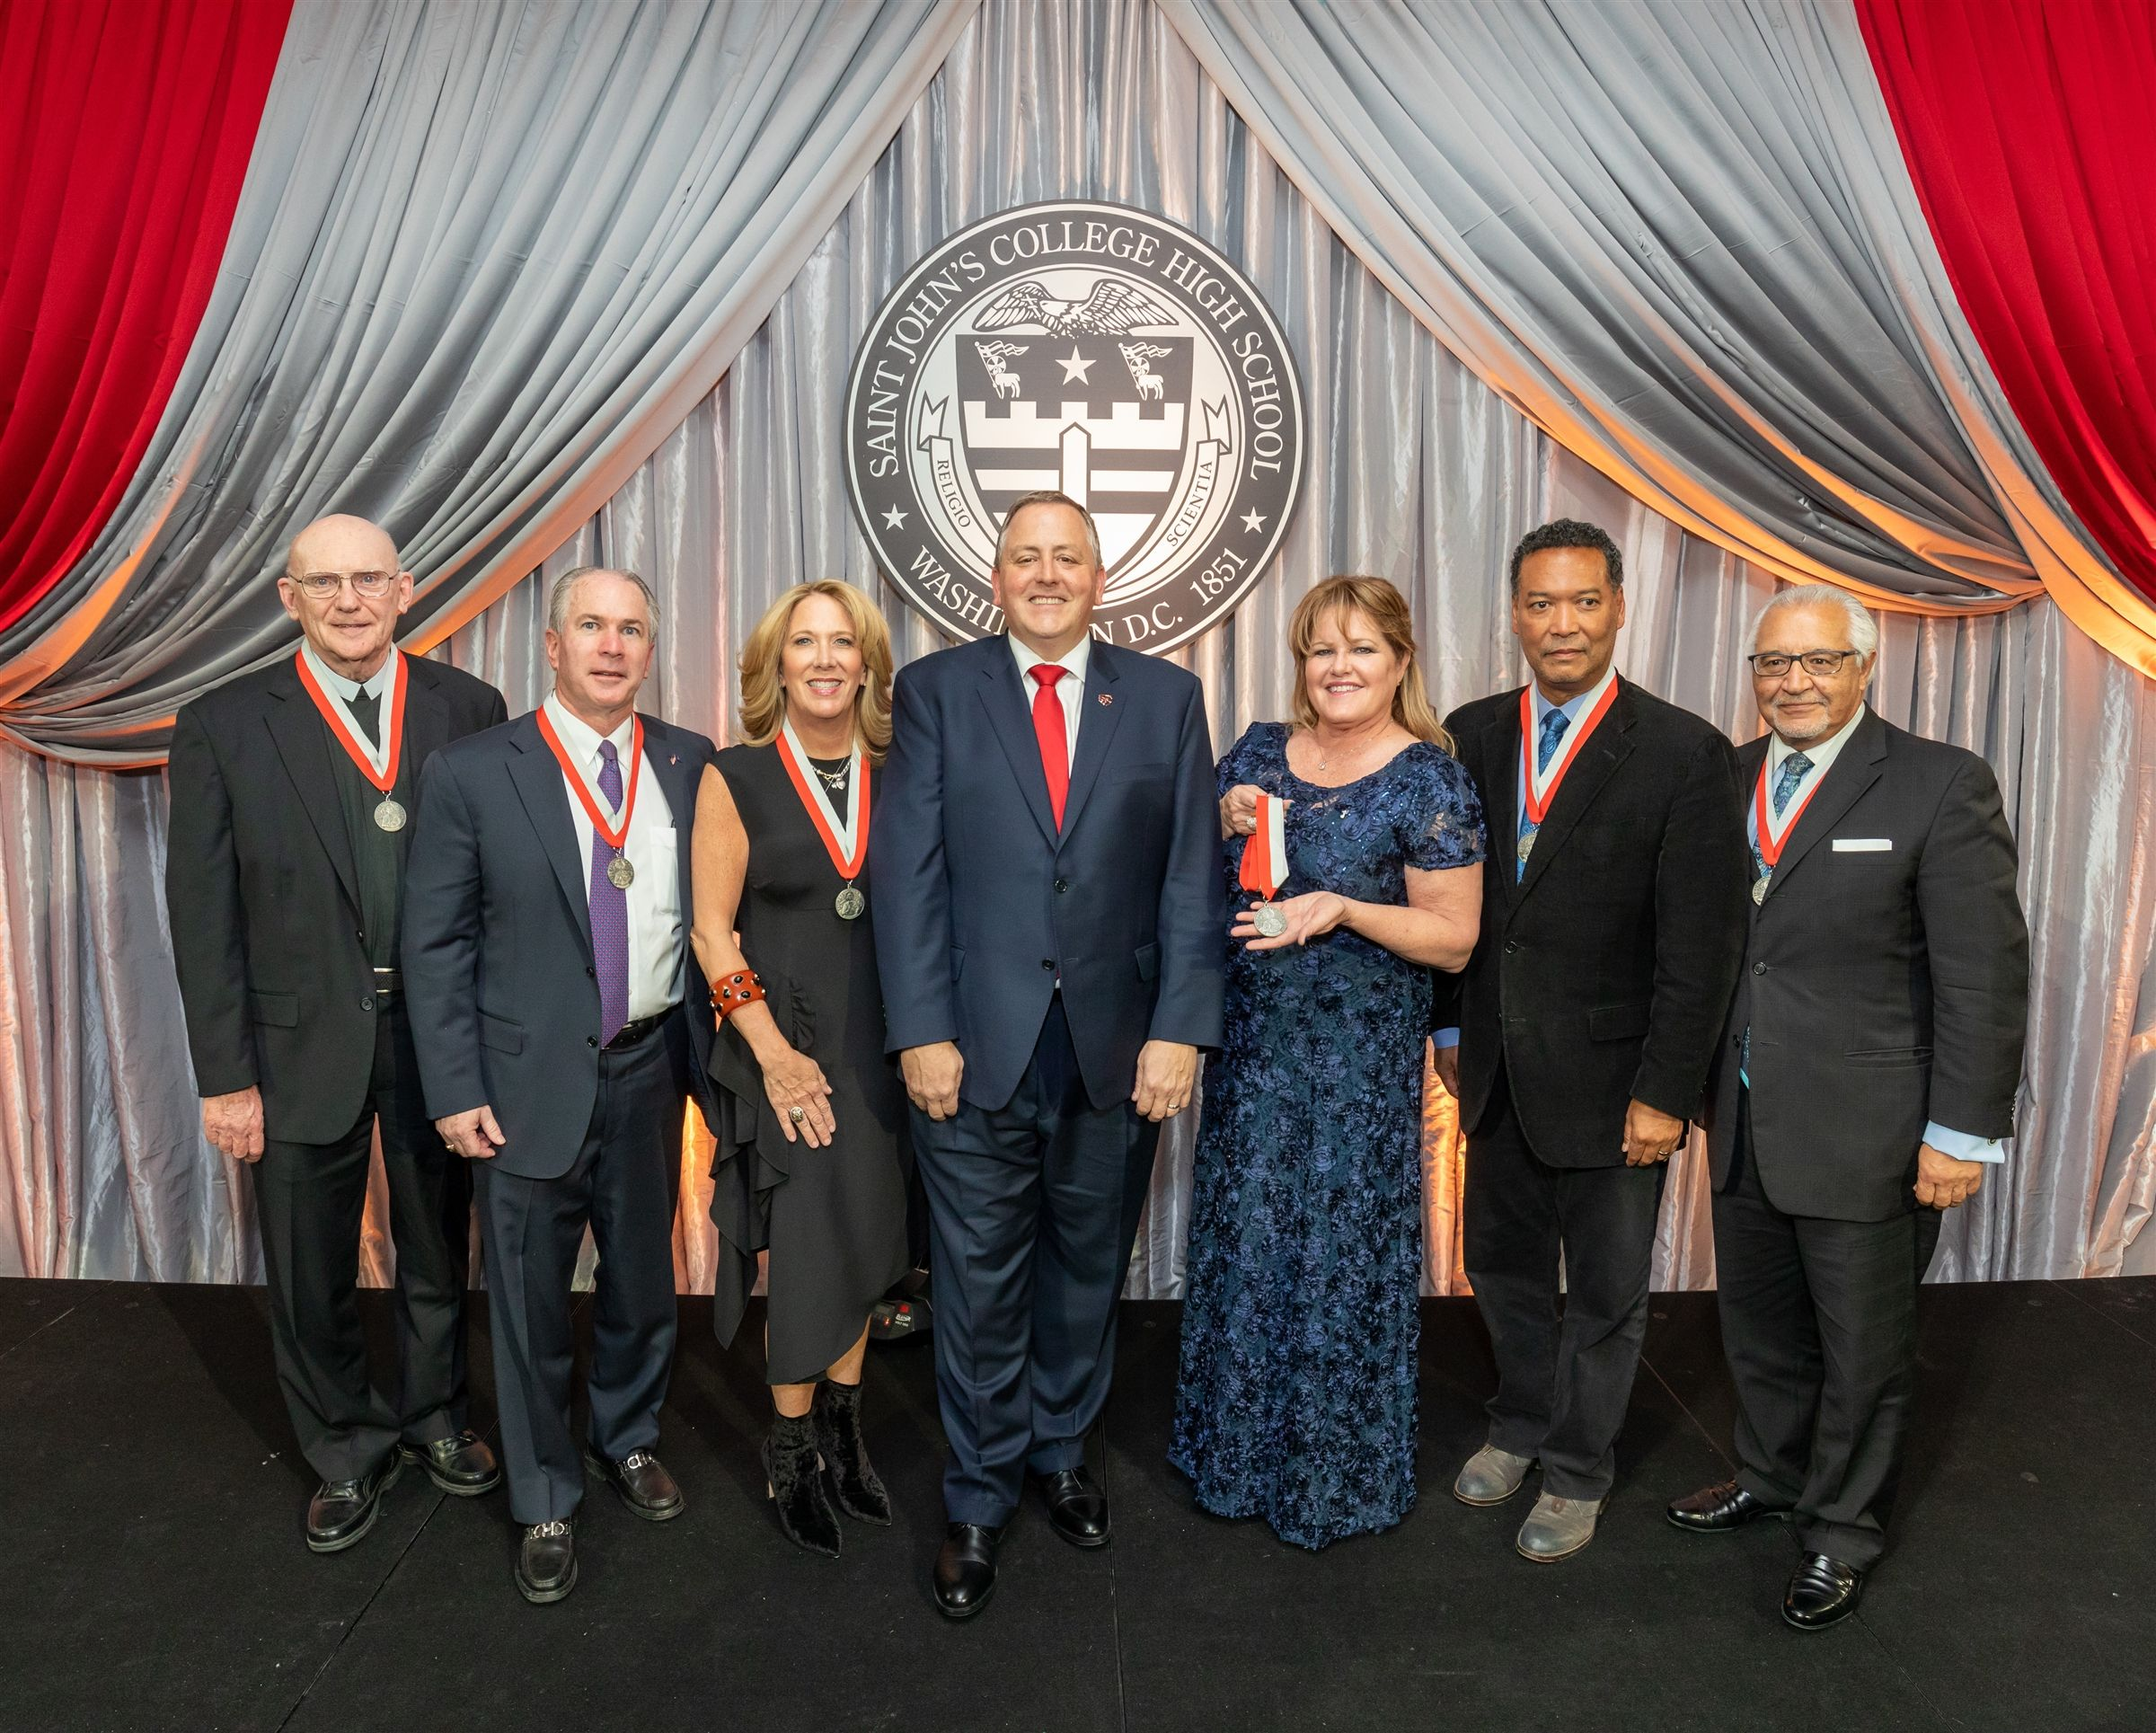 From left: Bro. Martin Zewe, Don and Laura Harlan, SJC President Jeff Mancabelli, Alison Ochoa, daughter of Maj. Gen. Ronald Beckwith '53, Kiko Washington '76 and Joe Bruno '67